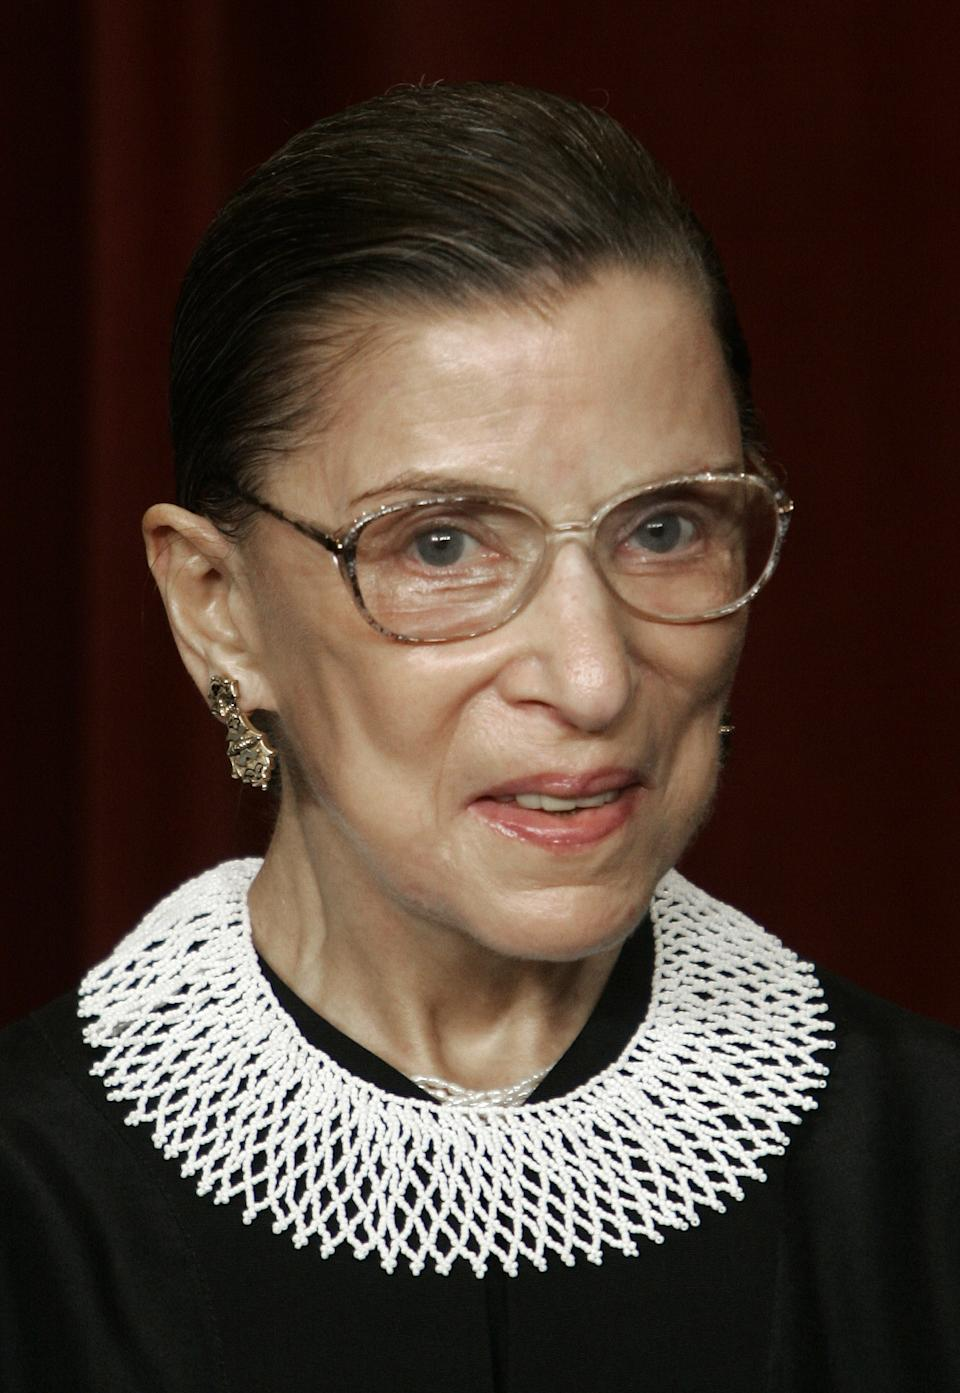 US Supreme Court Justice Ruth Bader Ginsburg looks at the camera as the justices pose for their class photo 03 March 2006 inside the Supreme Court in Washington, DC.     AFP PHOTO/Paul J. RICHARDS (Photo by Paul J. RICHARDS / AFP) (Photo by PAUL J. RICHARDS/AFP via Getty Images)